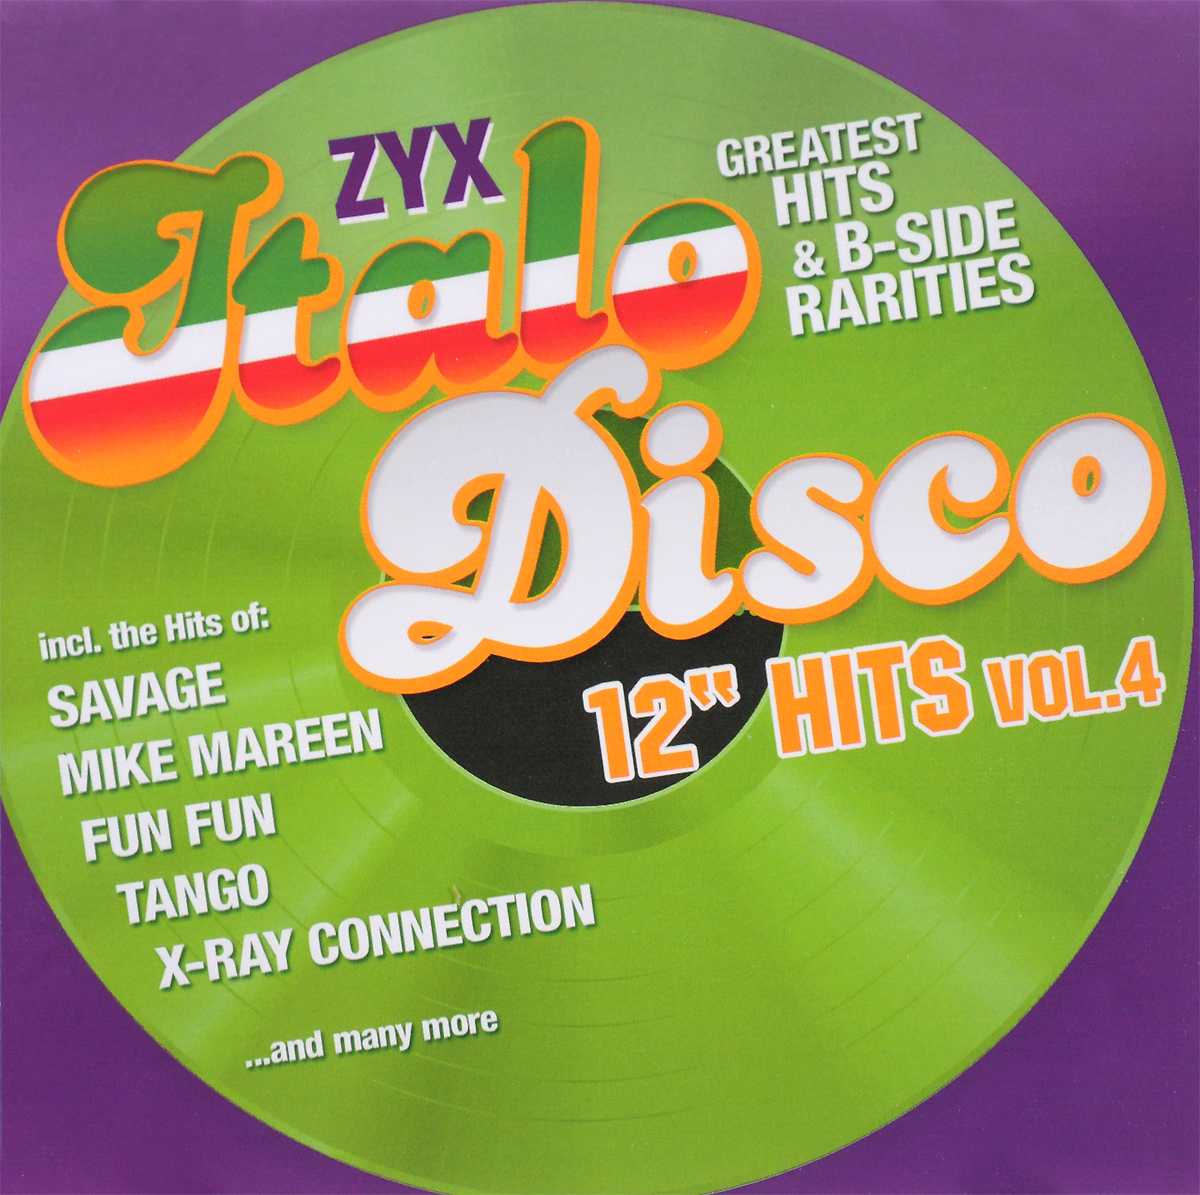 """Fun Fun"",Savage,Brando,Biba,X-Ray Connection,Майк Мэрин,Tango,Duke Lake,Patricia,Майк Роджерс,Flo Astaire Zyx Italo Disco 12"" Hits Vol. 4 (2 CD)"